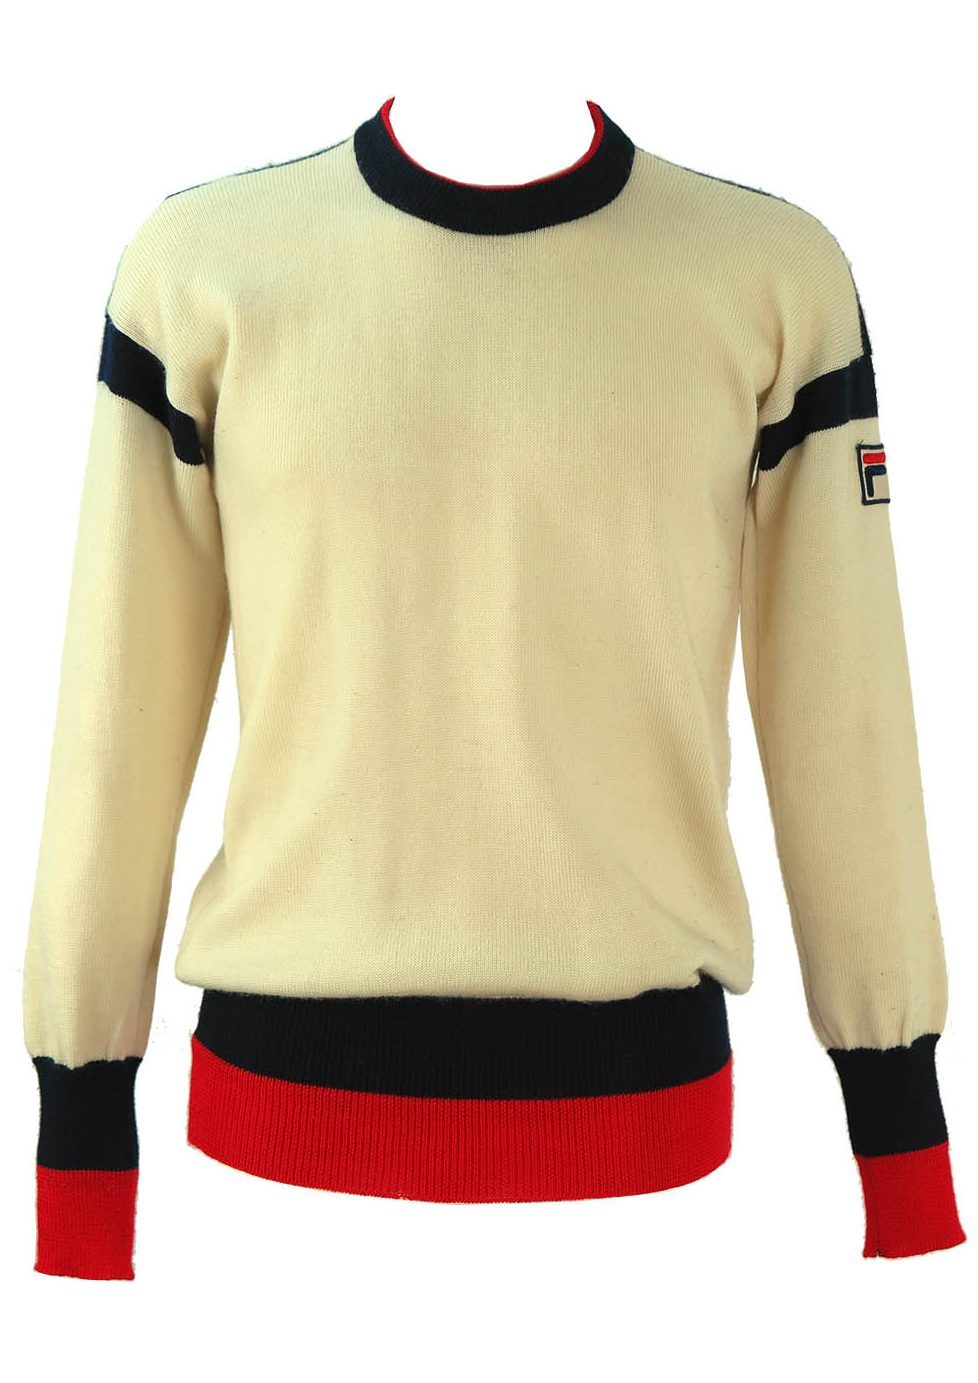 31088cc4b3f0 Vintage Fila Cream Wool Jumper with Blue and Red Edging – M – Reign ...